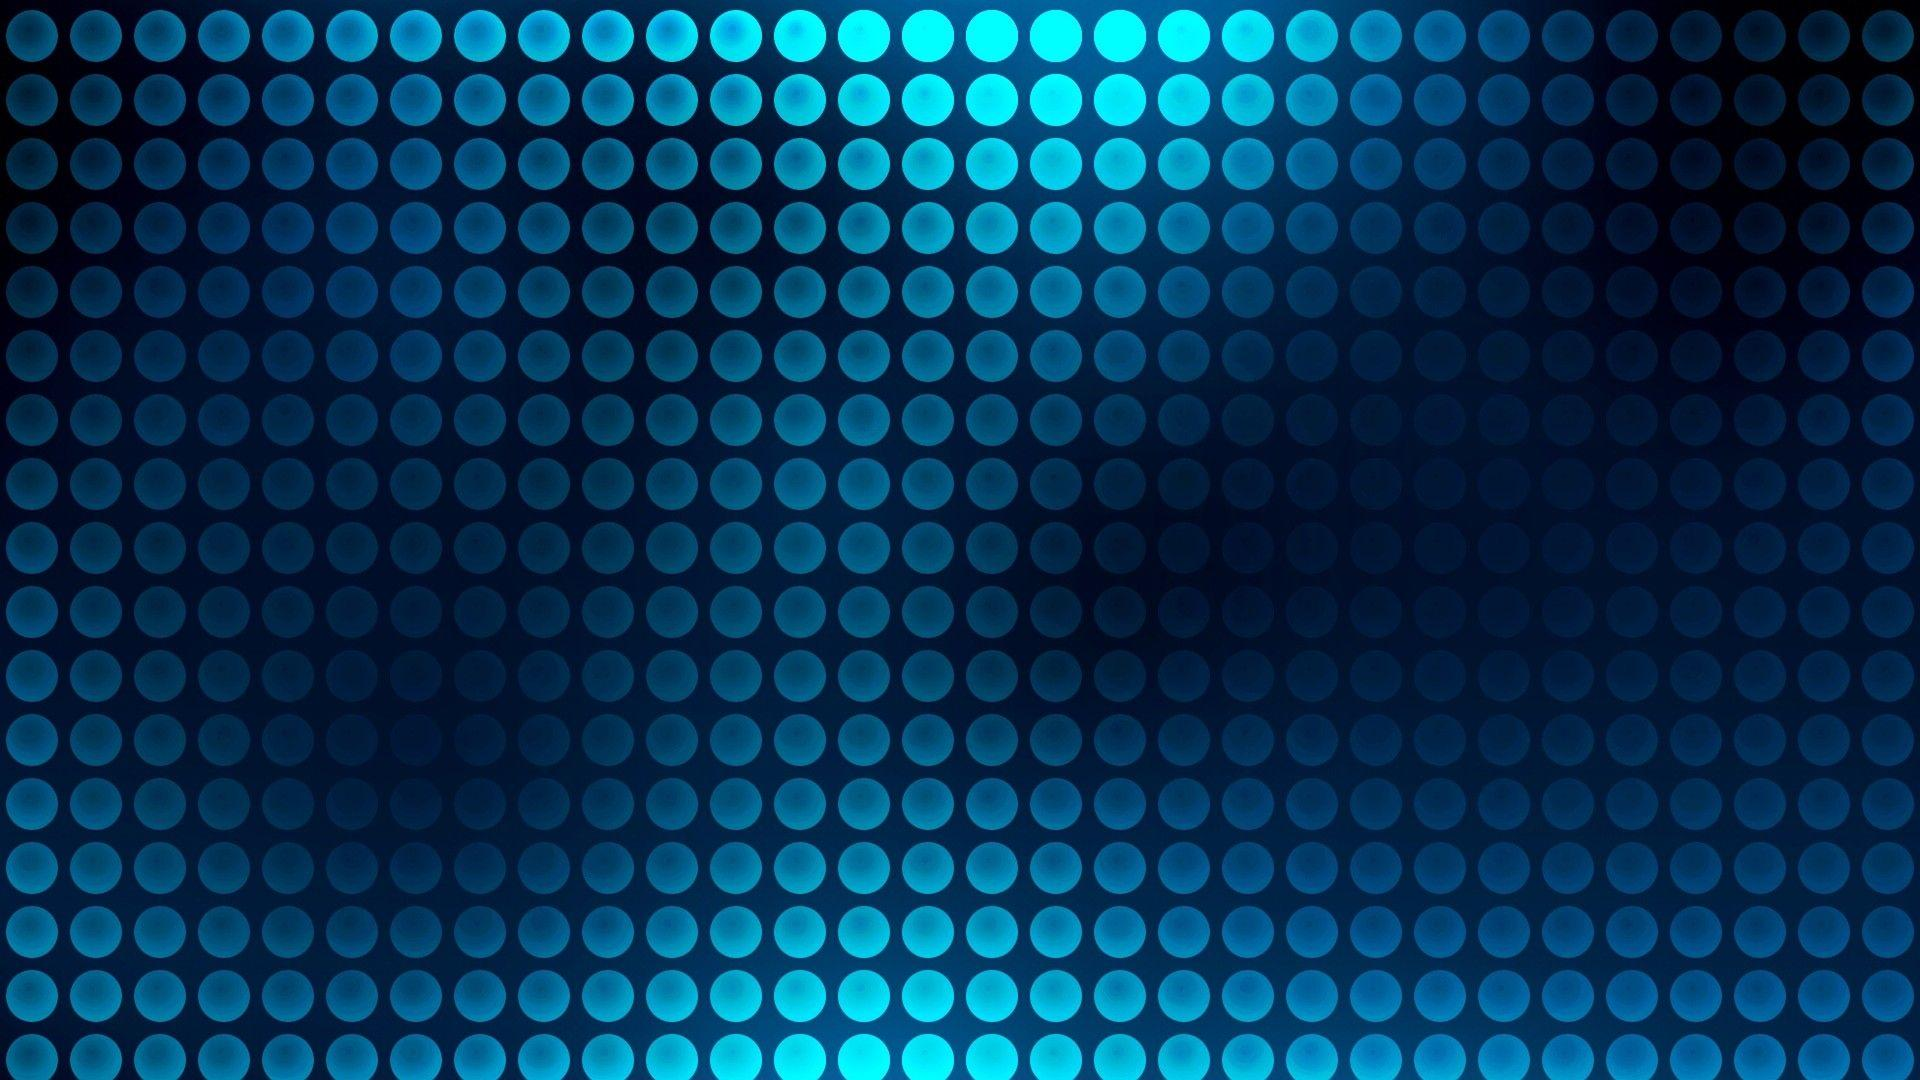 Blue Neon Circle Pattern Wallpapers Wide or HD